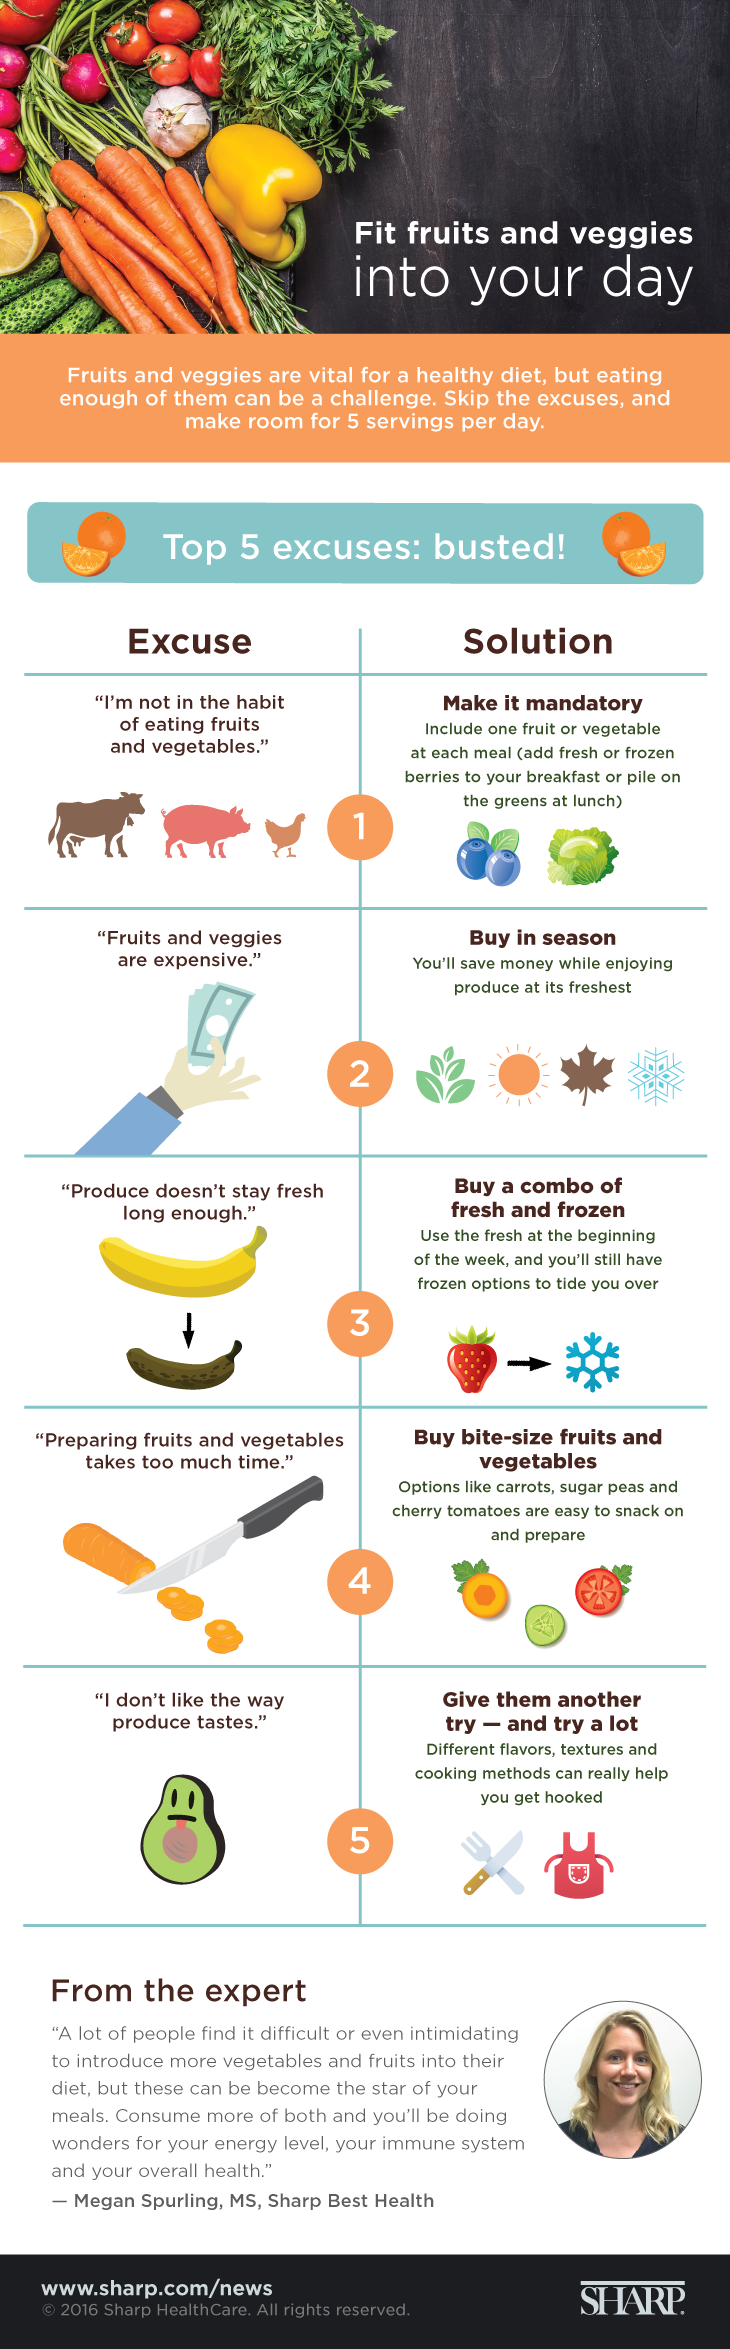 Fit fruits and veggies into your day (infographic)